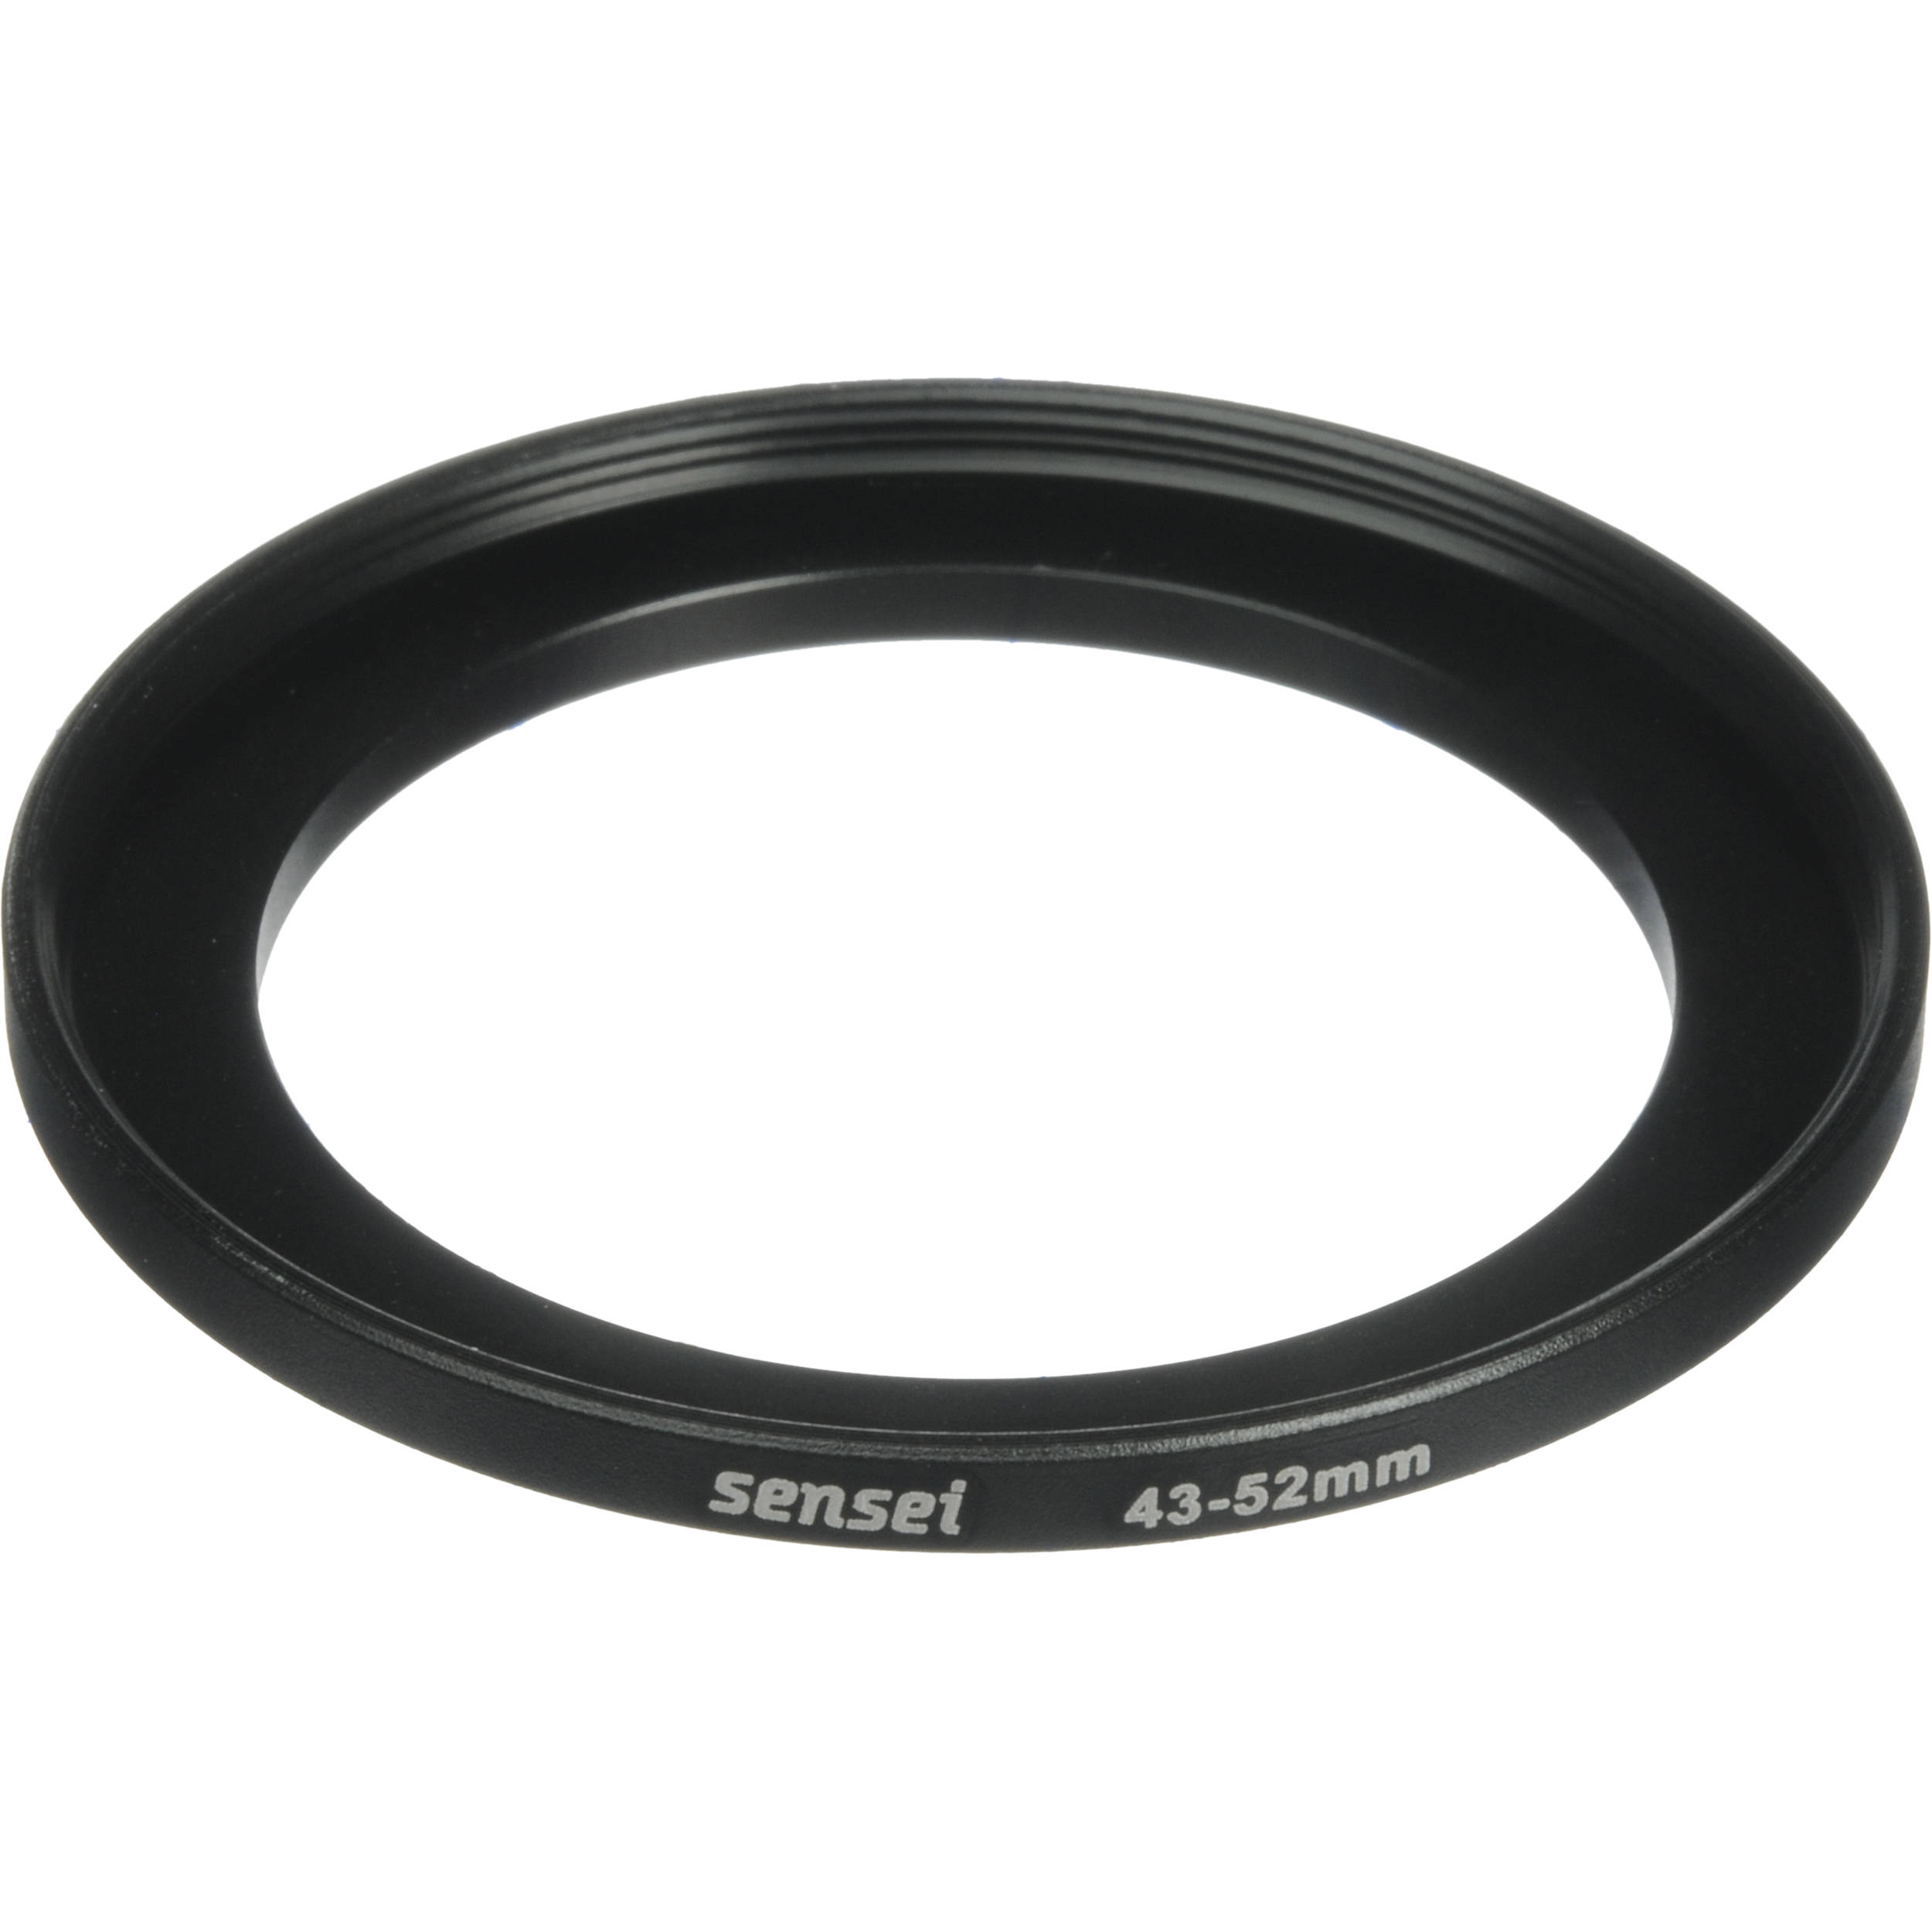 2 Pack Sensei 50mm Lens to 52mm Filter Step-Up Ring